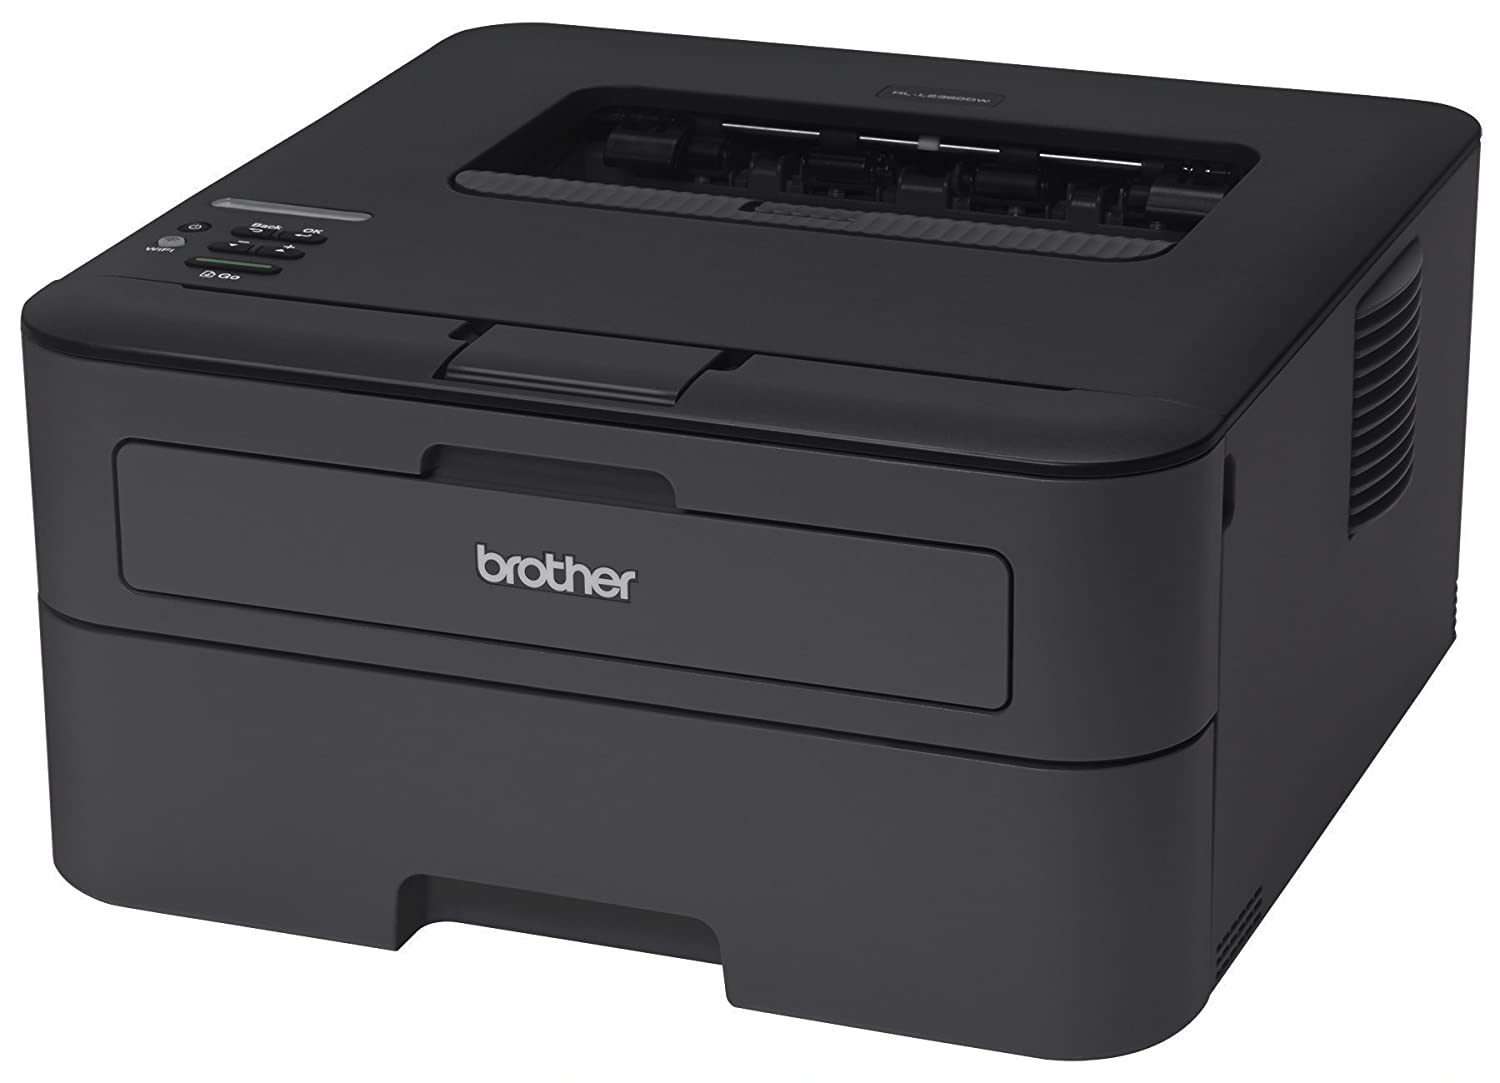 Brother Printer EHLL2360DW Compact Laser Printer Certified Refurbished Duplex Printing /& Wireless Networking,